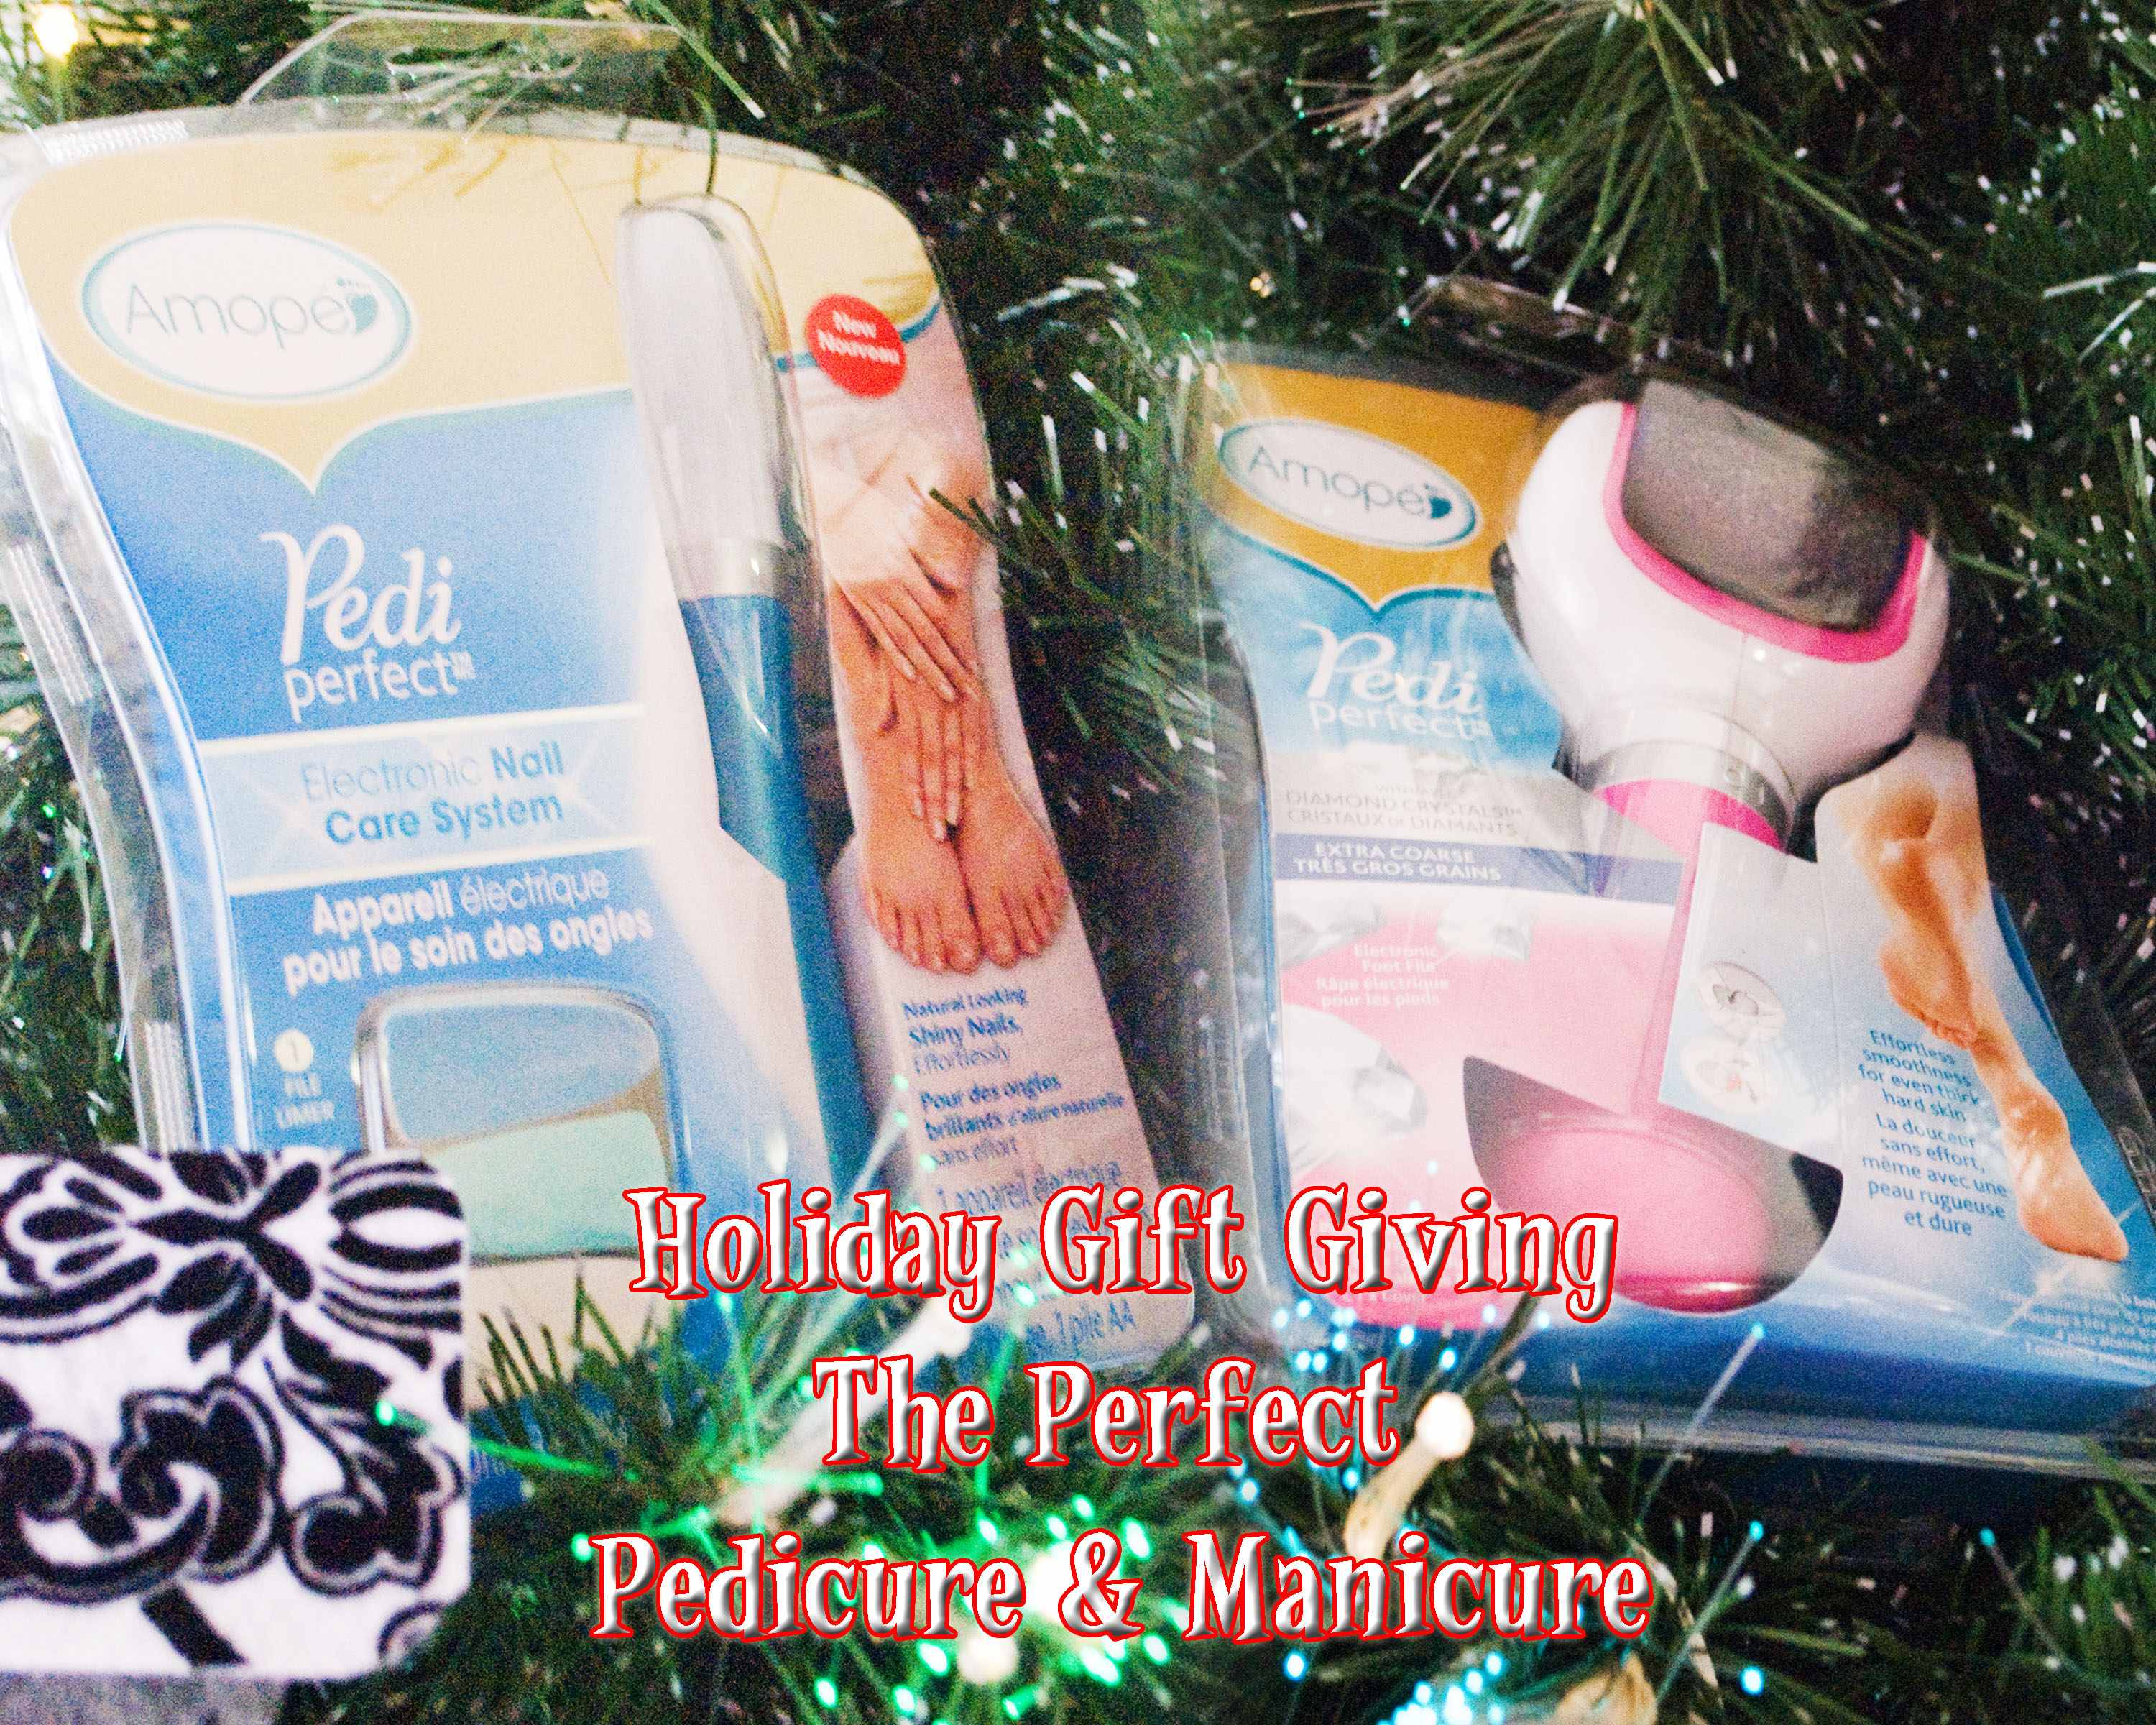 Holiday Gift Option - The Perfect Pedicure and Manicure With Amopé